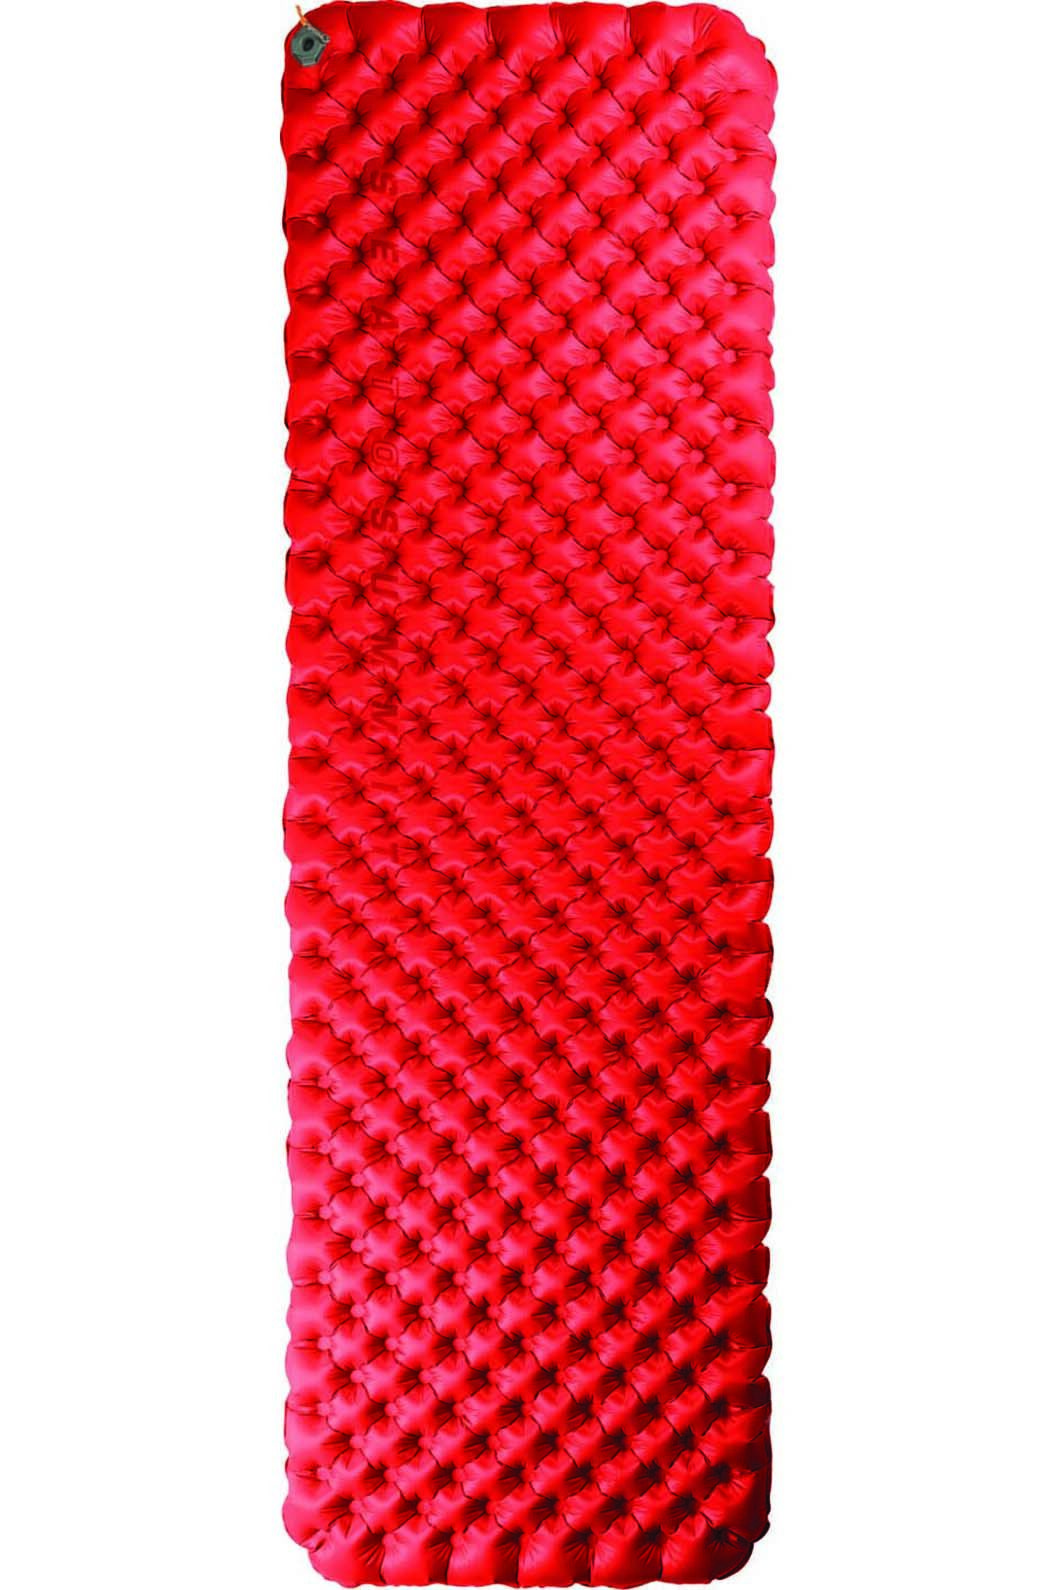 Sea to Summit Comfort Plus Insulated Mat, None, hi-res